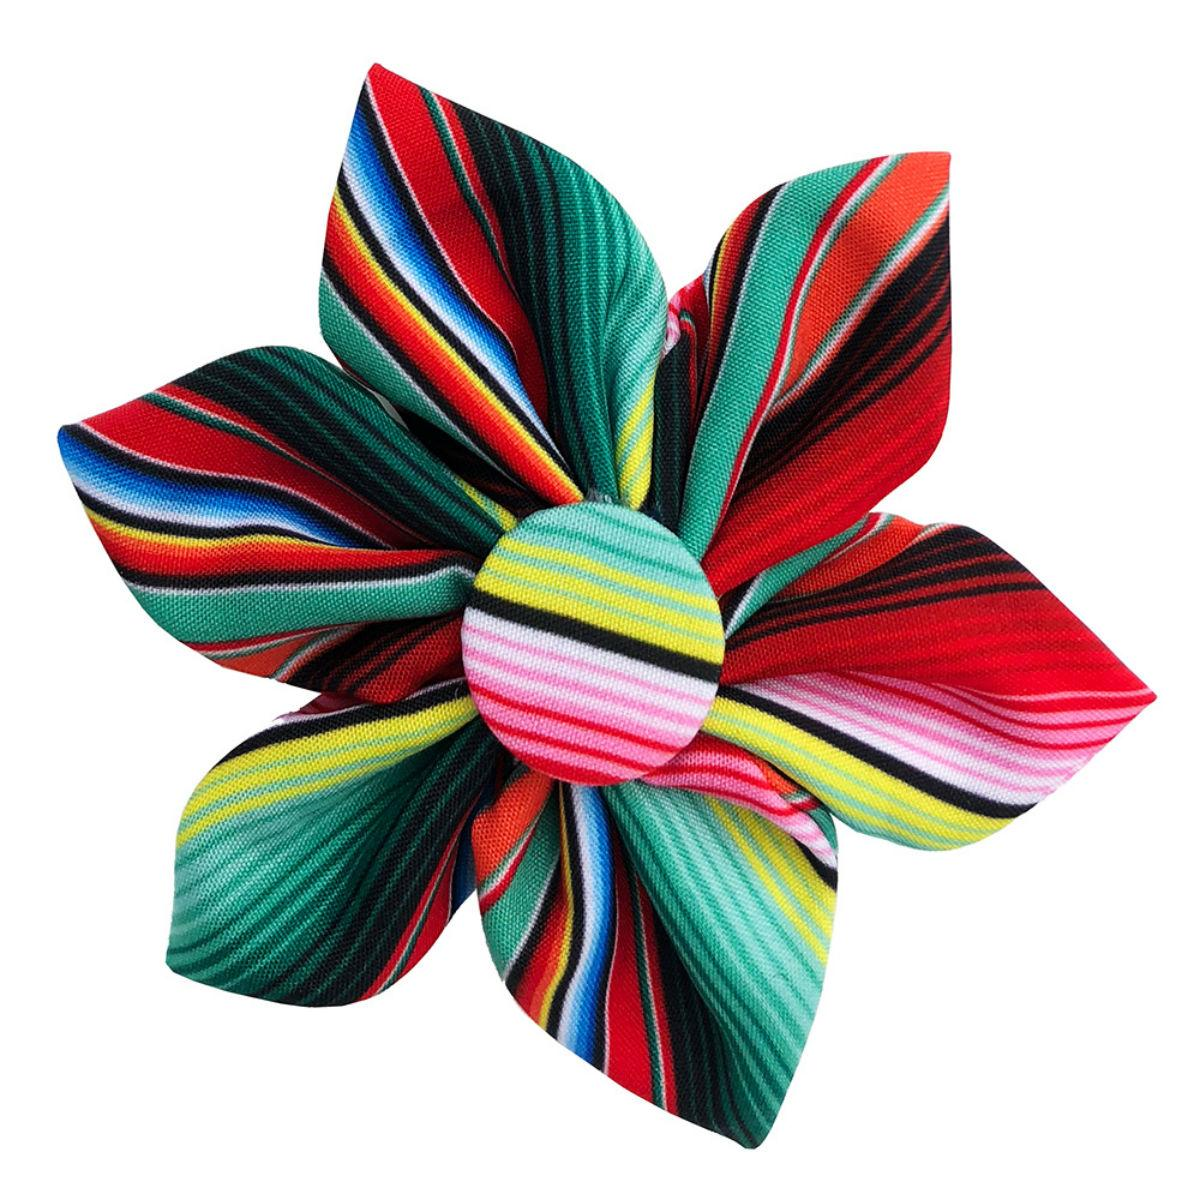 Huxley & Kent Pinwheel Dog Collar Attachment - Serape